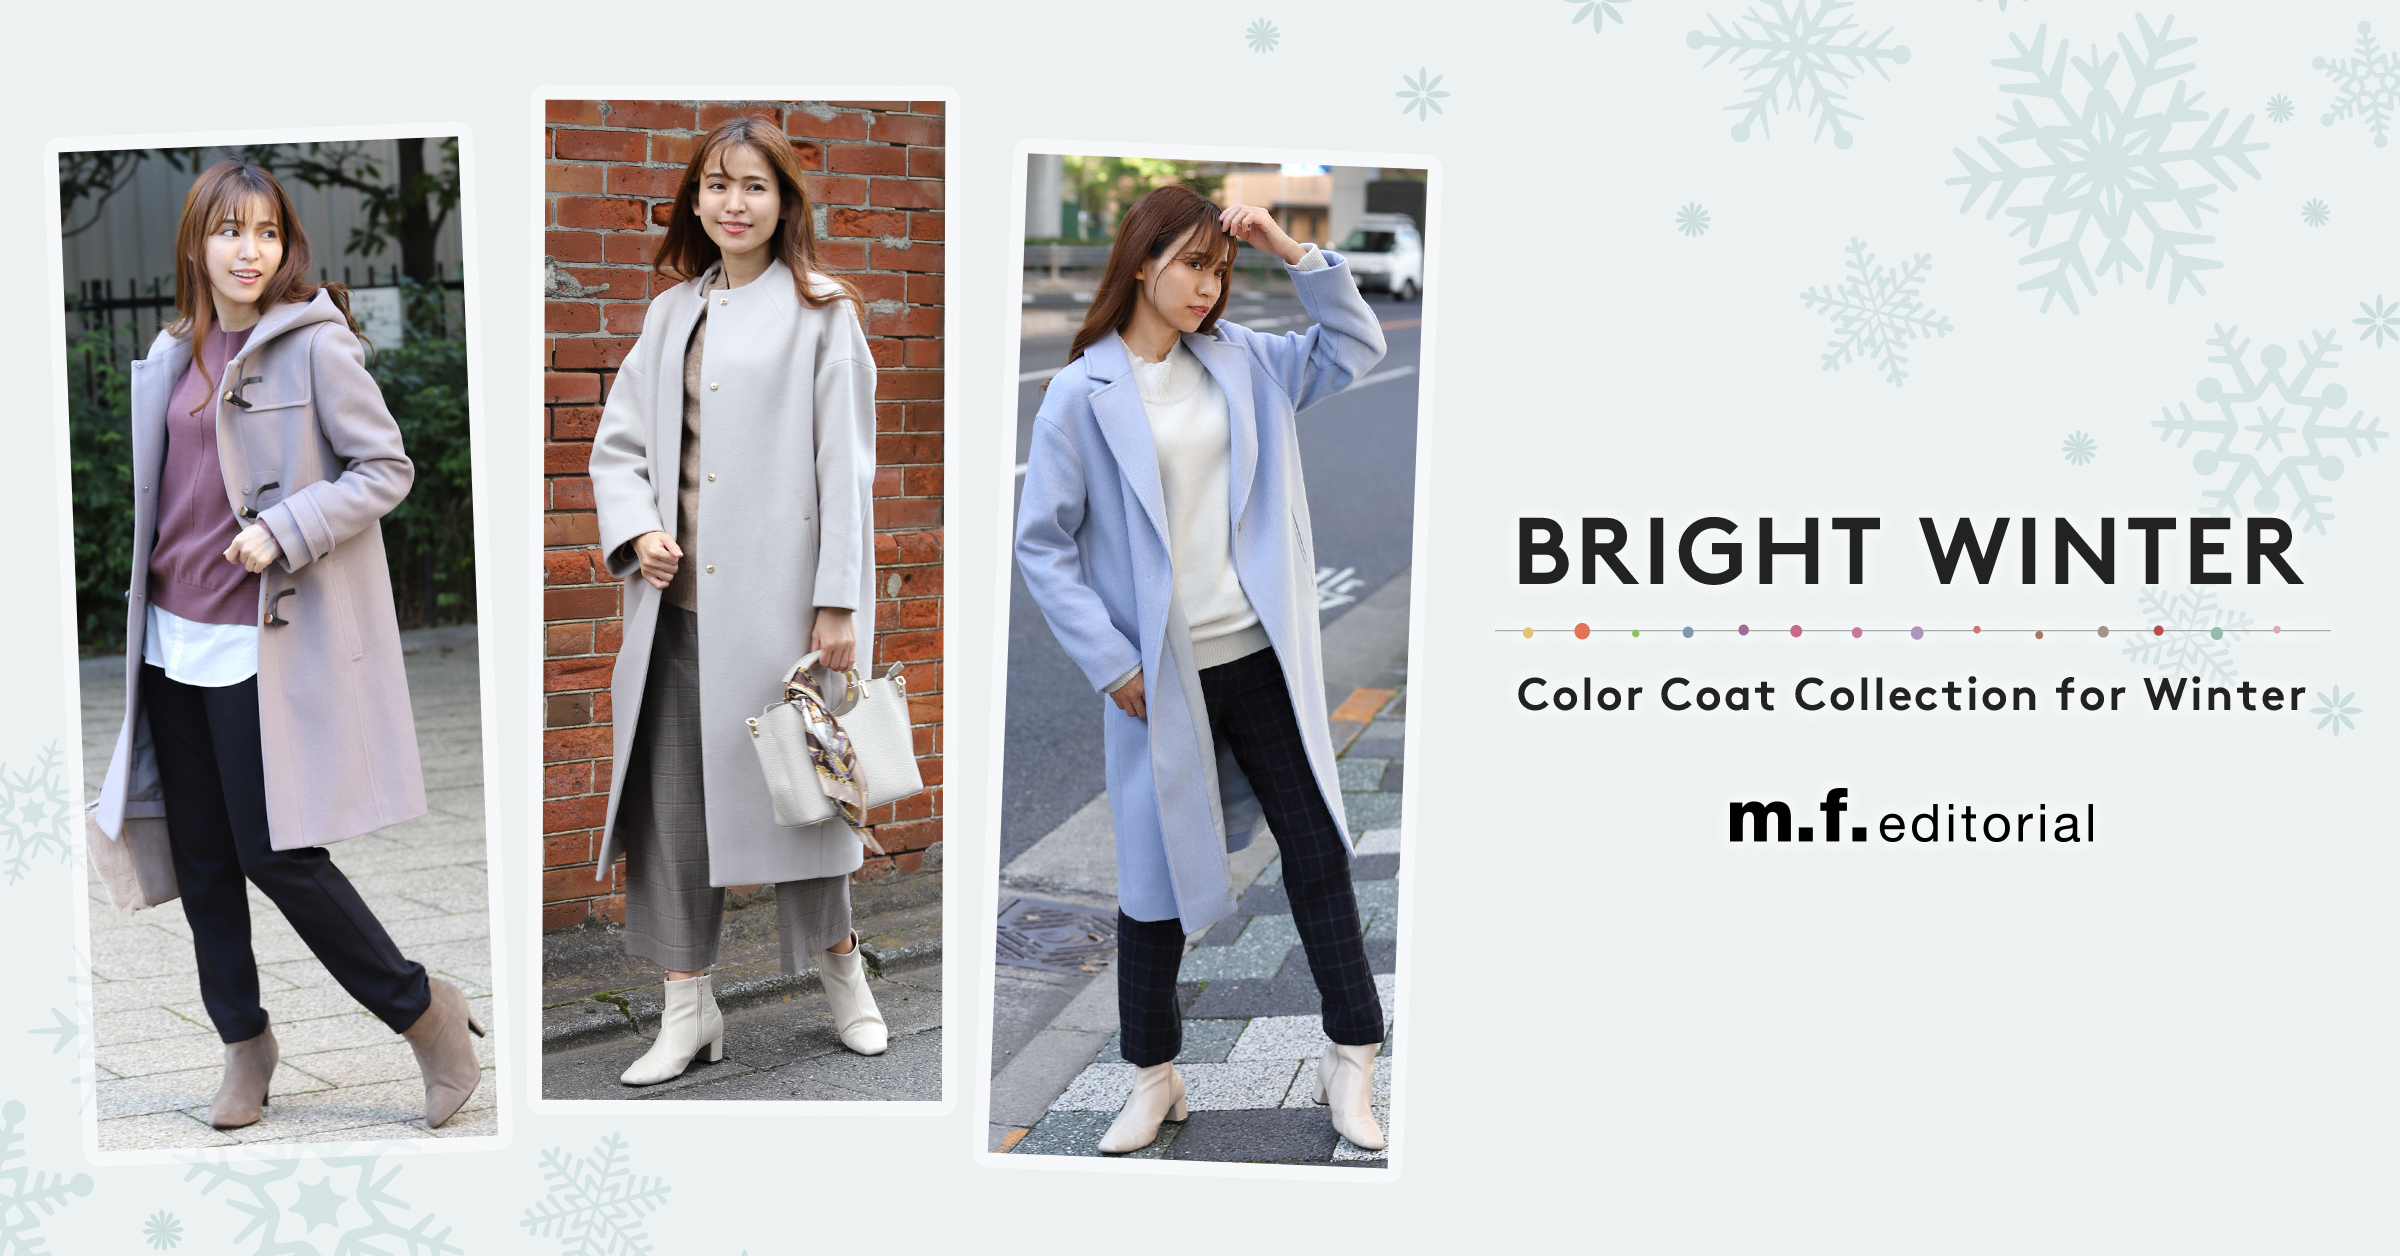 BRIGHT WINTER Color Coat Collection for Winter